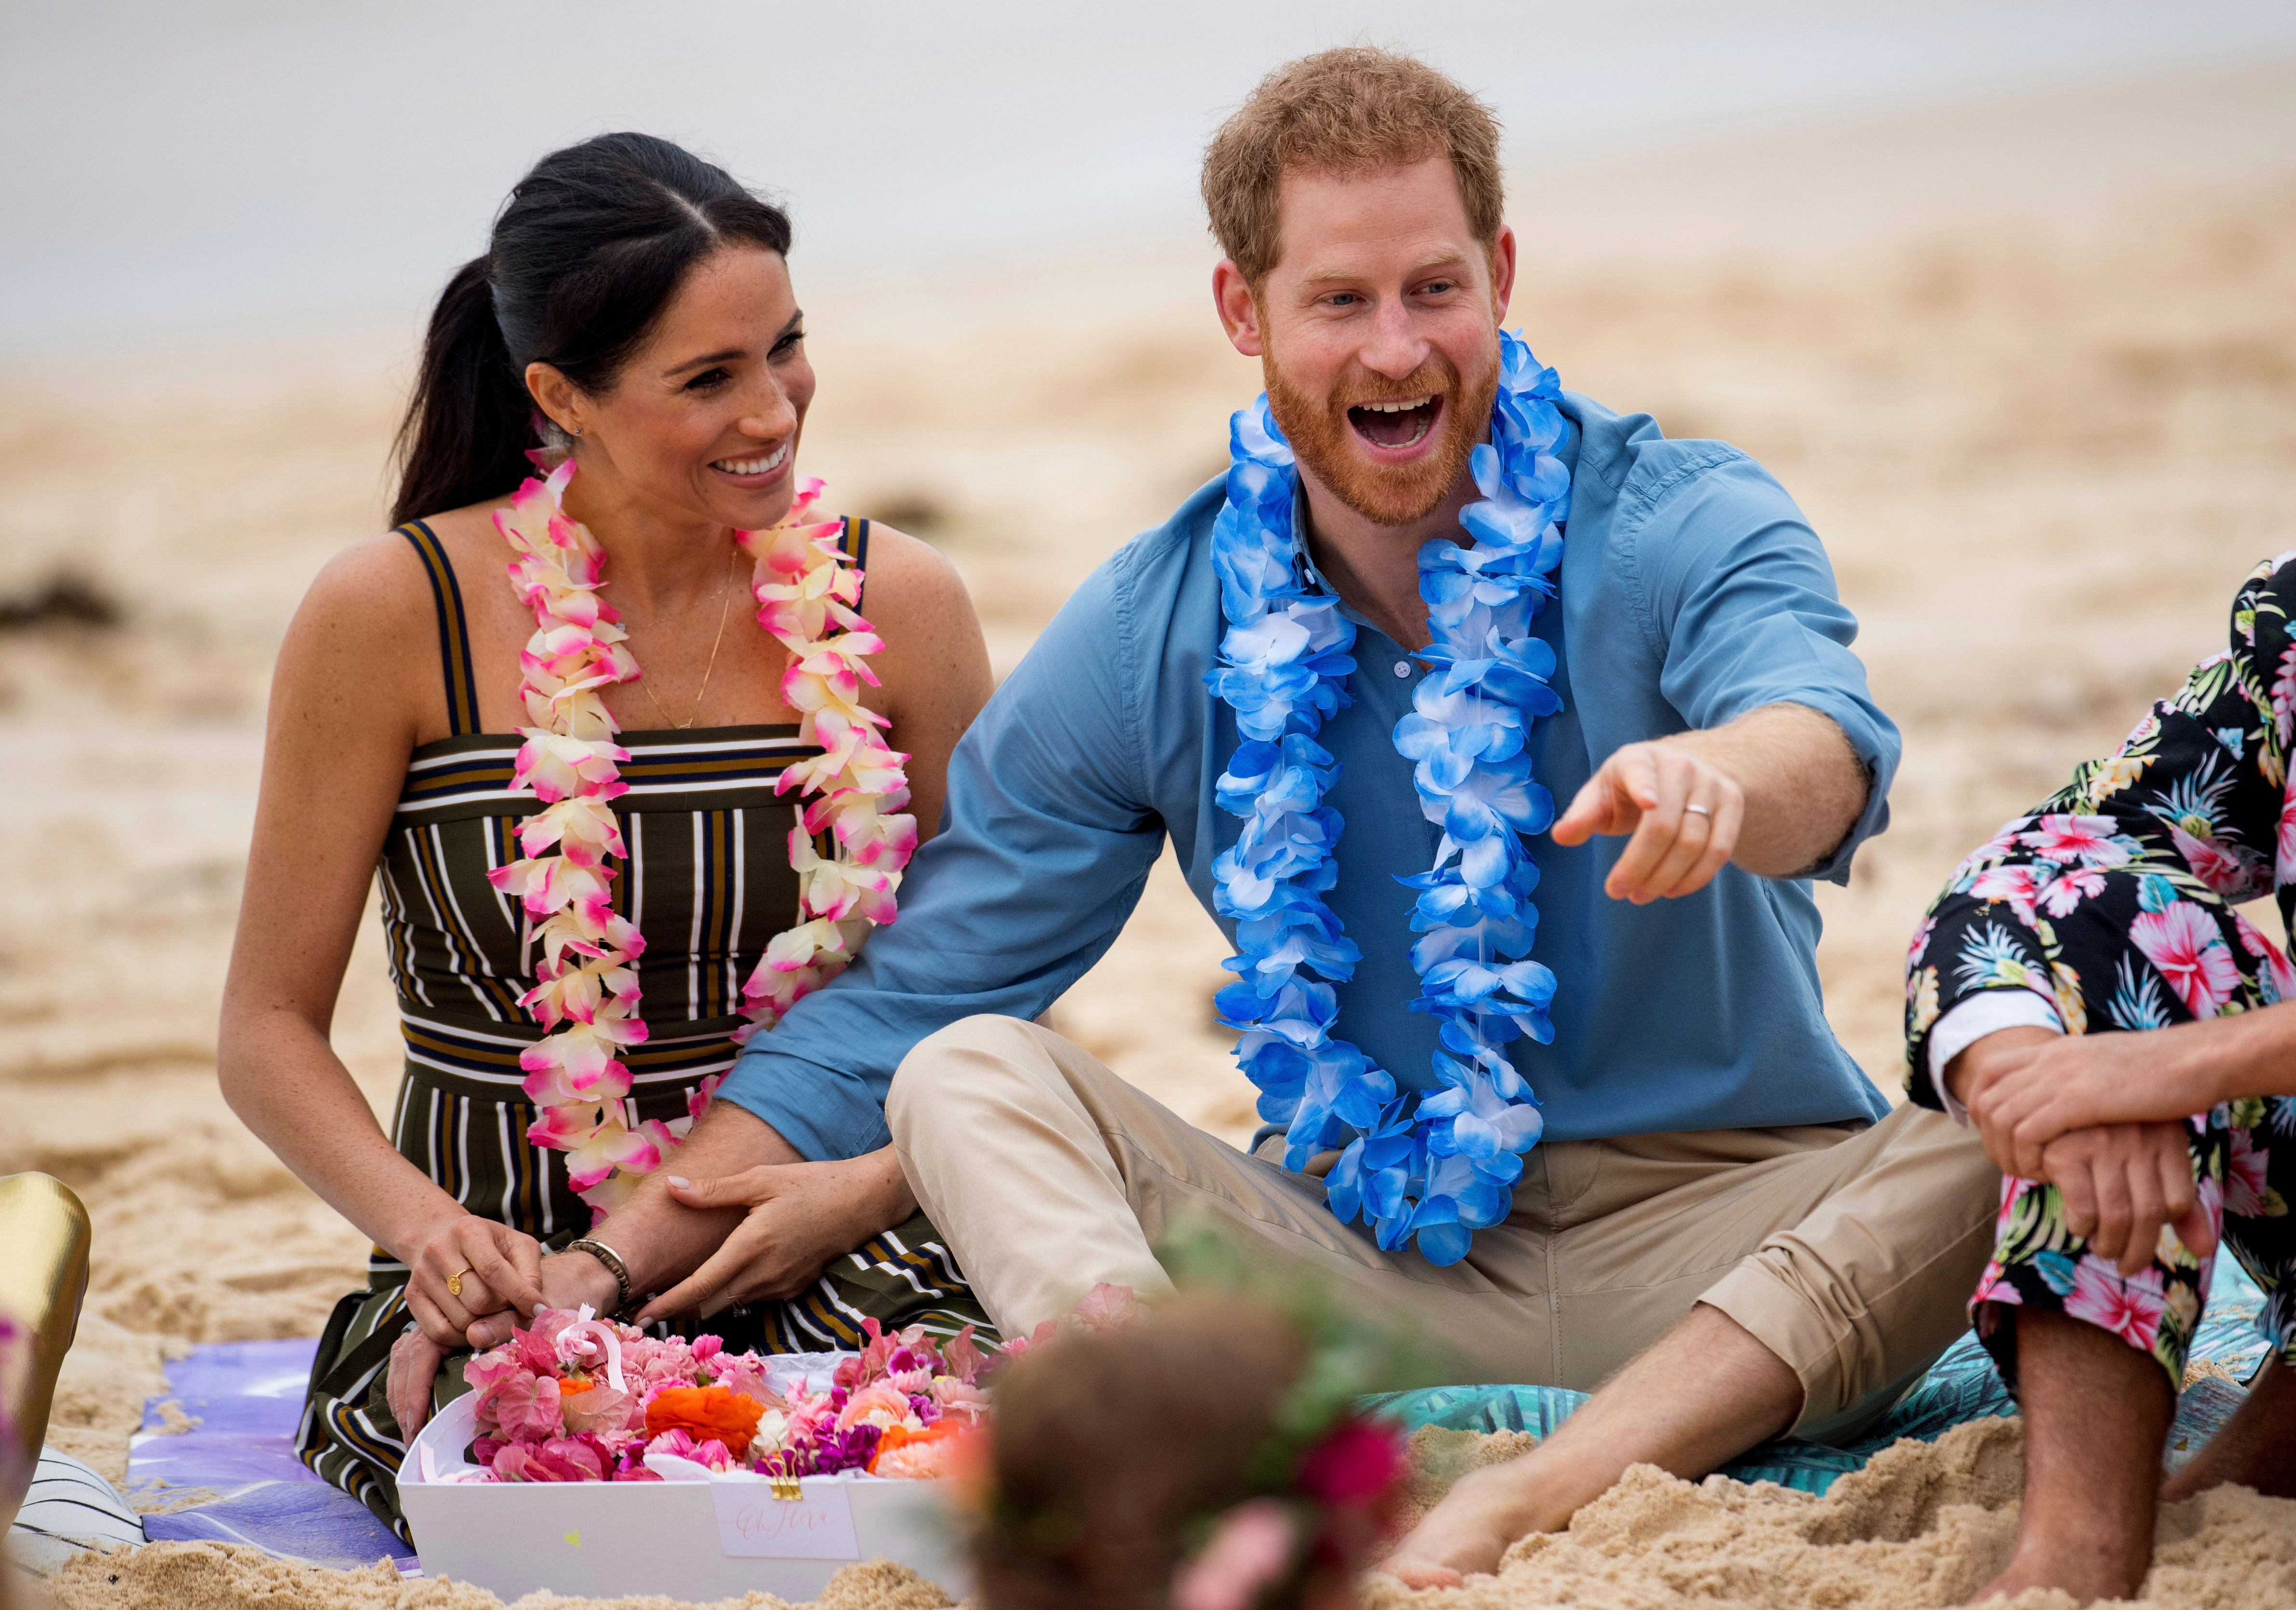 Britain's Prince Harry and Meghan, Duchess of Sussex meet with a local surfing community group, known as OneWave, raising awareness for mental health and wellbeing in a fun and engaging way at Bondi Beach in Sydney, Australia, Friday, Oct. 19, 2018. . Prince Harry and his wife Meghan are on day four of their 16-day tour of Australia and the South Pacific. (Dominic Lipinski/Pool via AP)